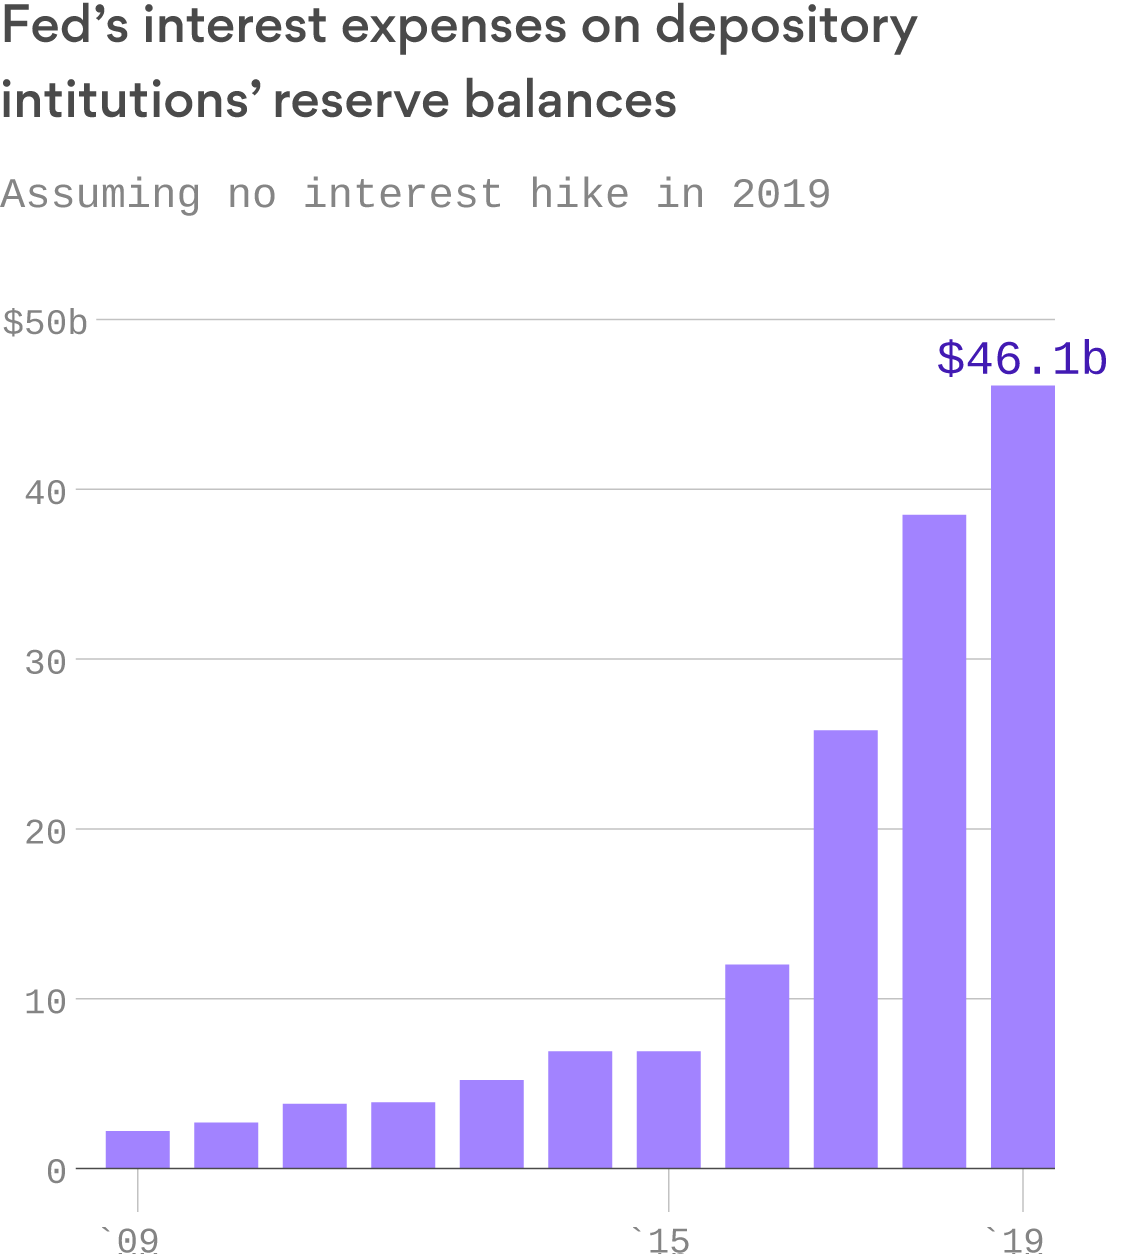 The Fed will pay $46 billion in interest payments on bank's reserve balances this year